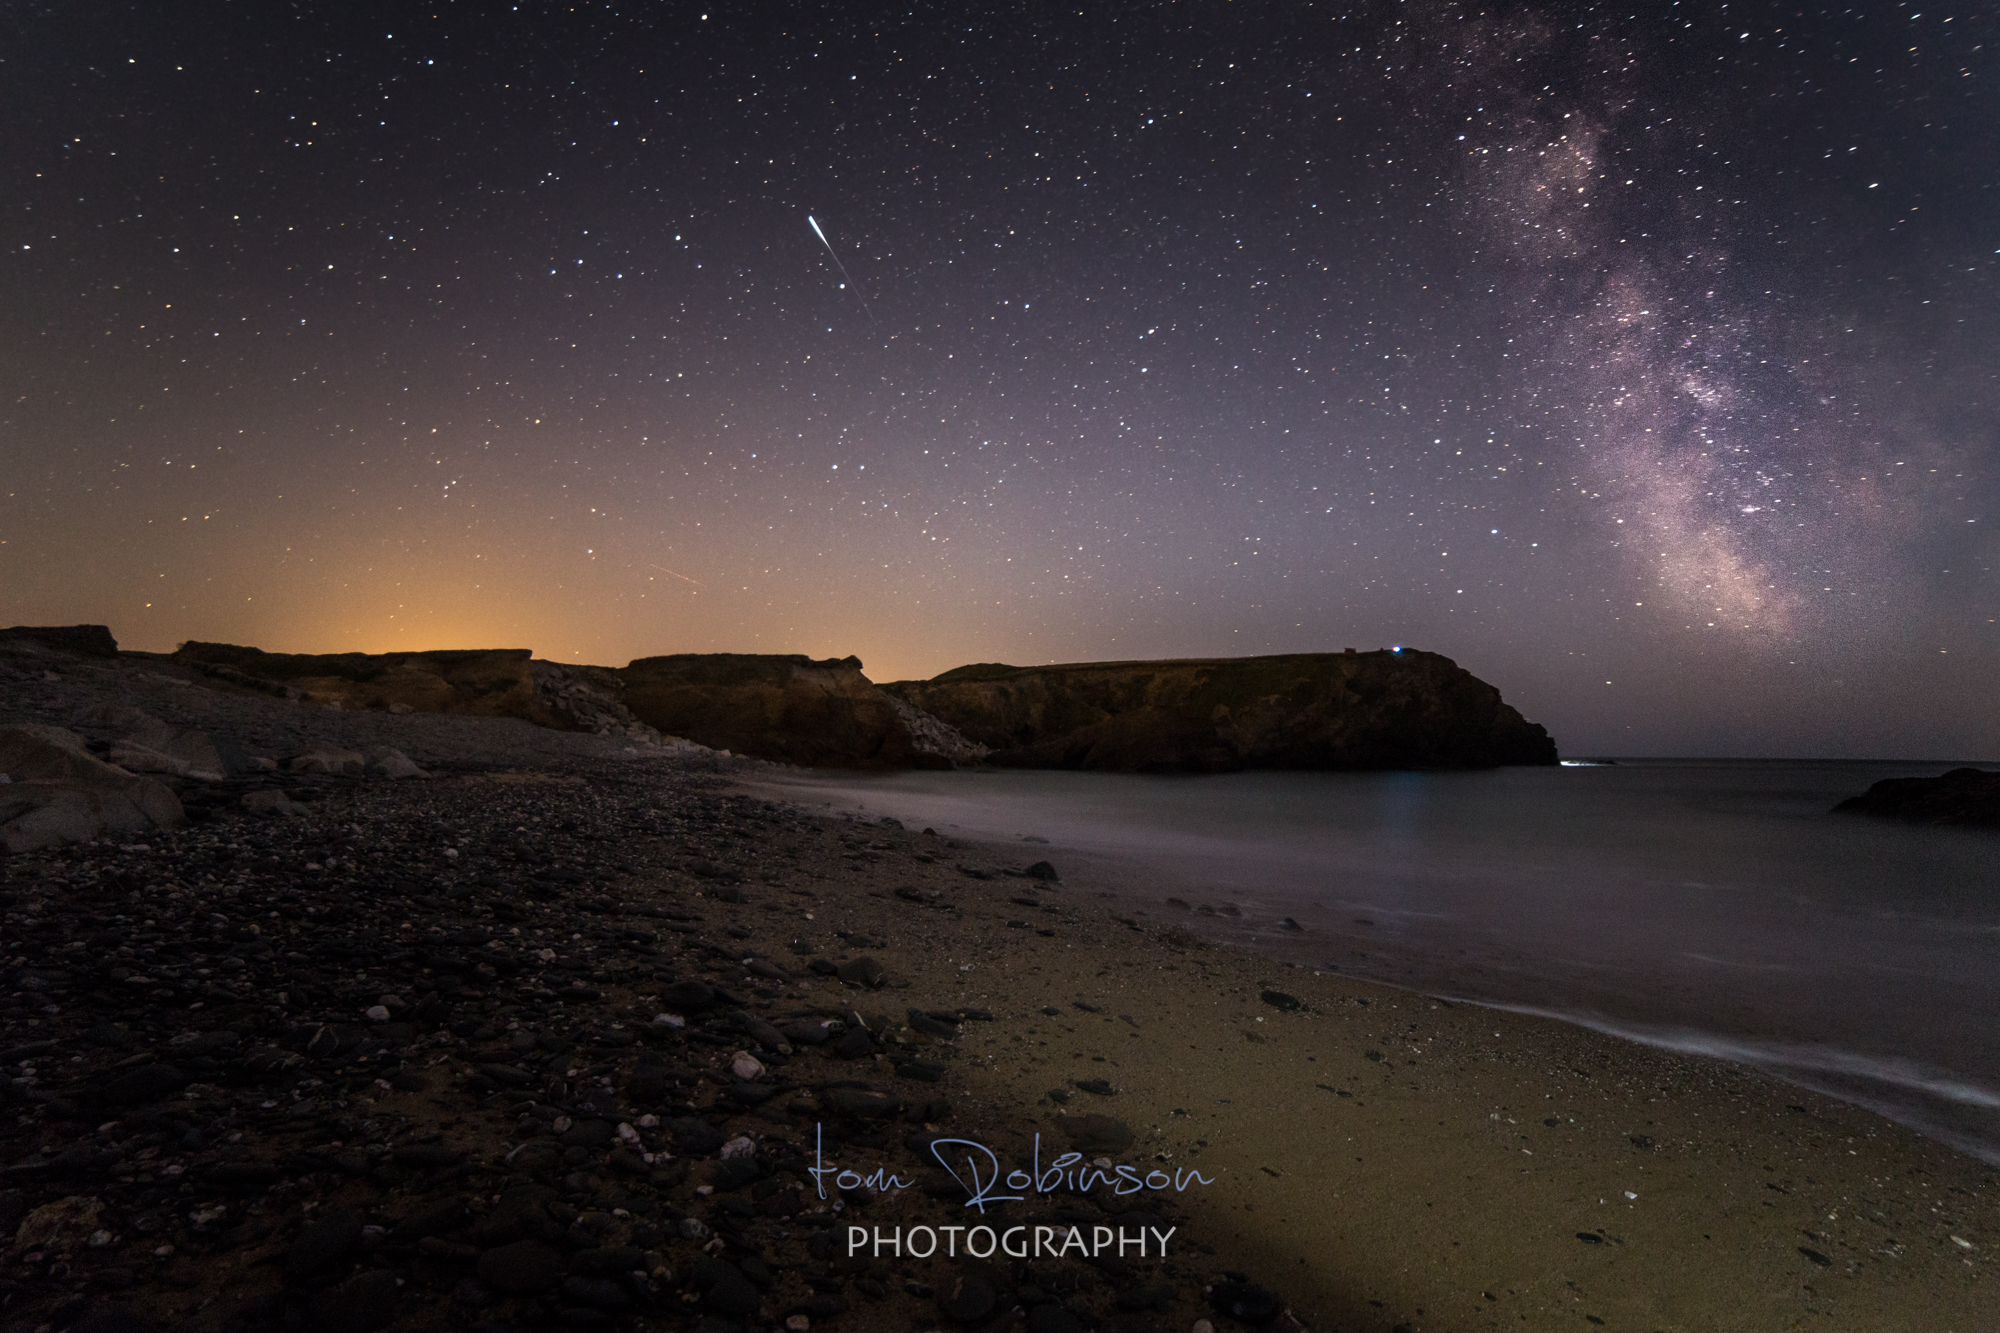 Dollar cove by night from the Cornwall by night collection by Tom Robinson Photography